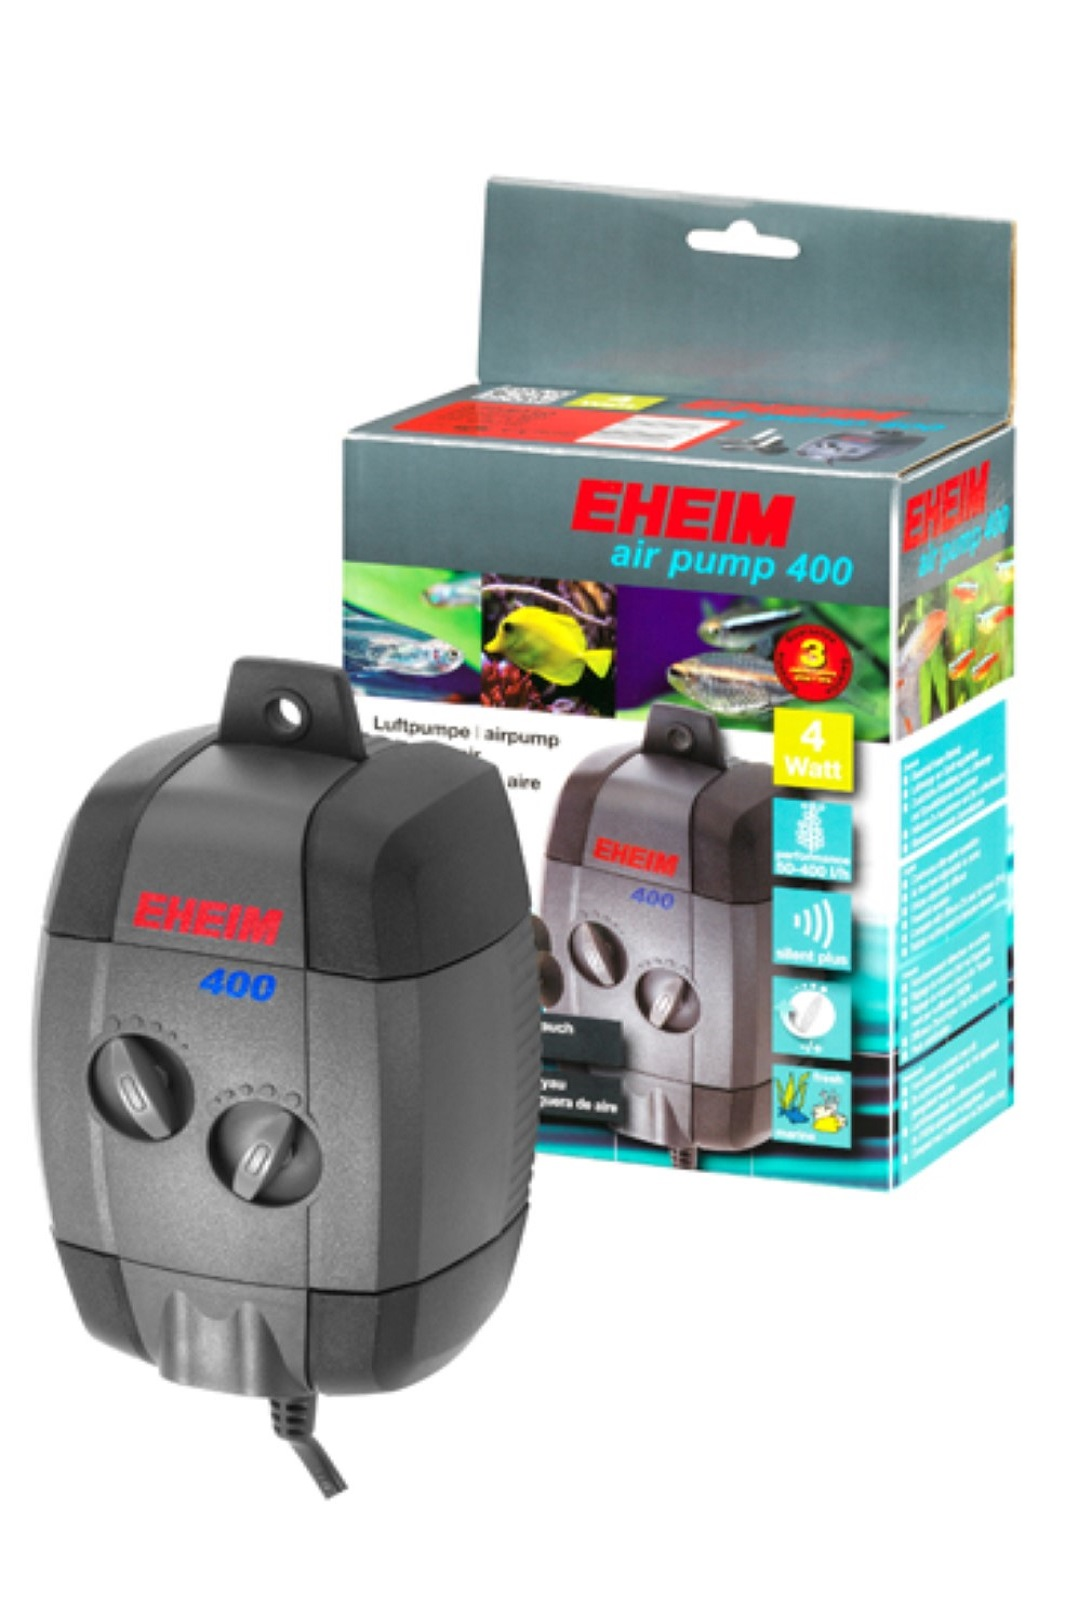 Eheim air pump 400 Pumpe Luftpumpe Aquarium